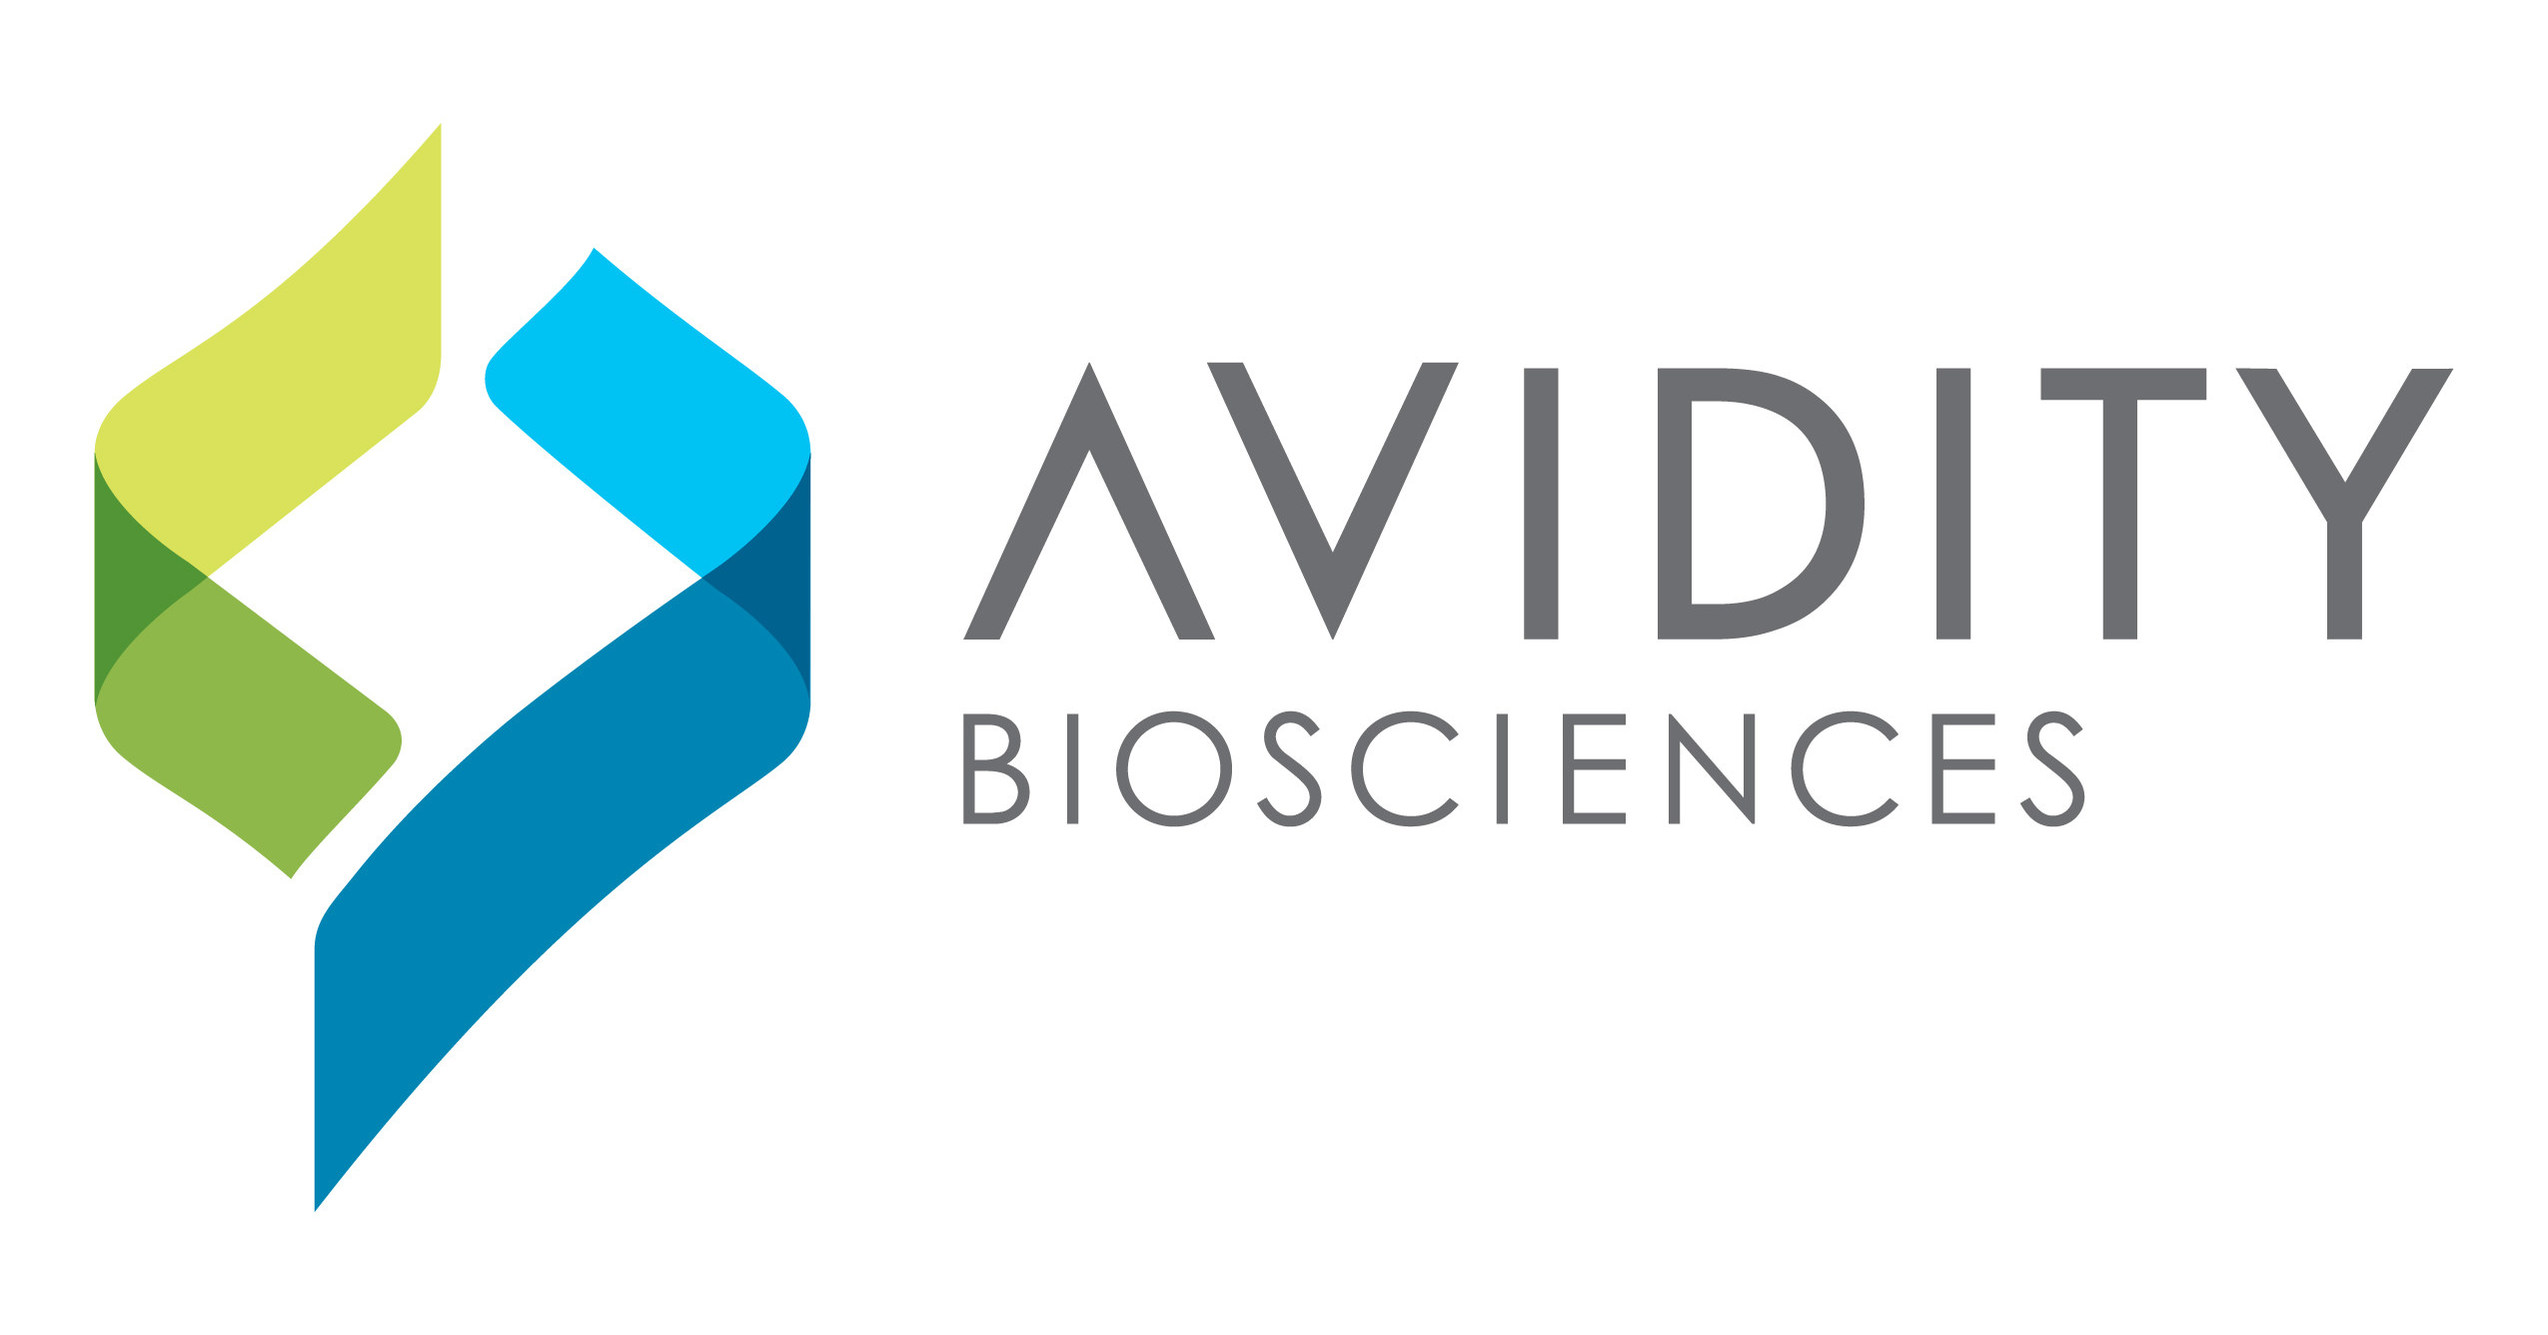 Avidity Biosciences IPO